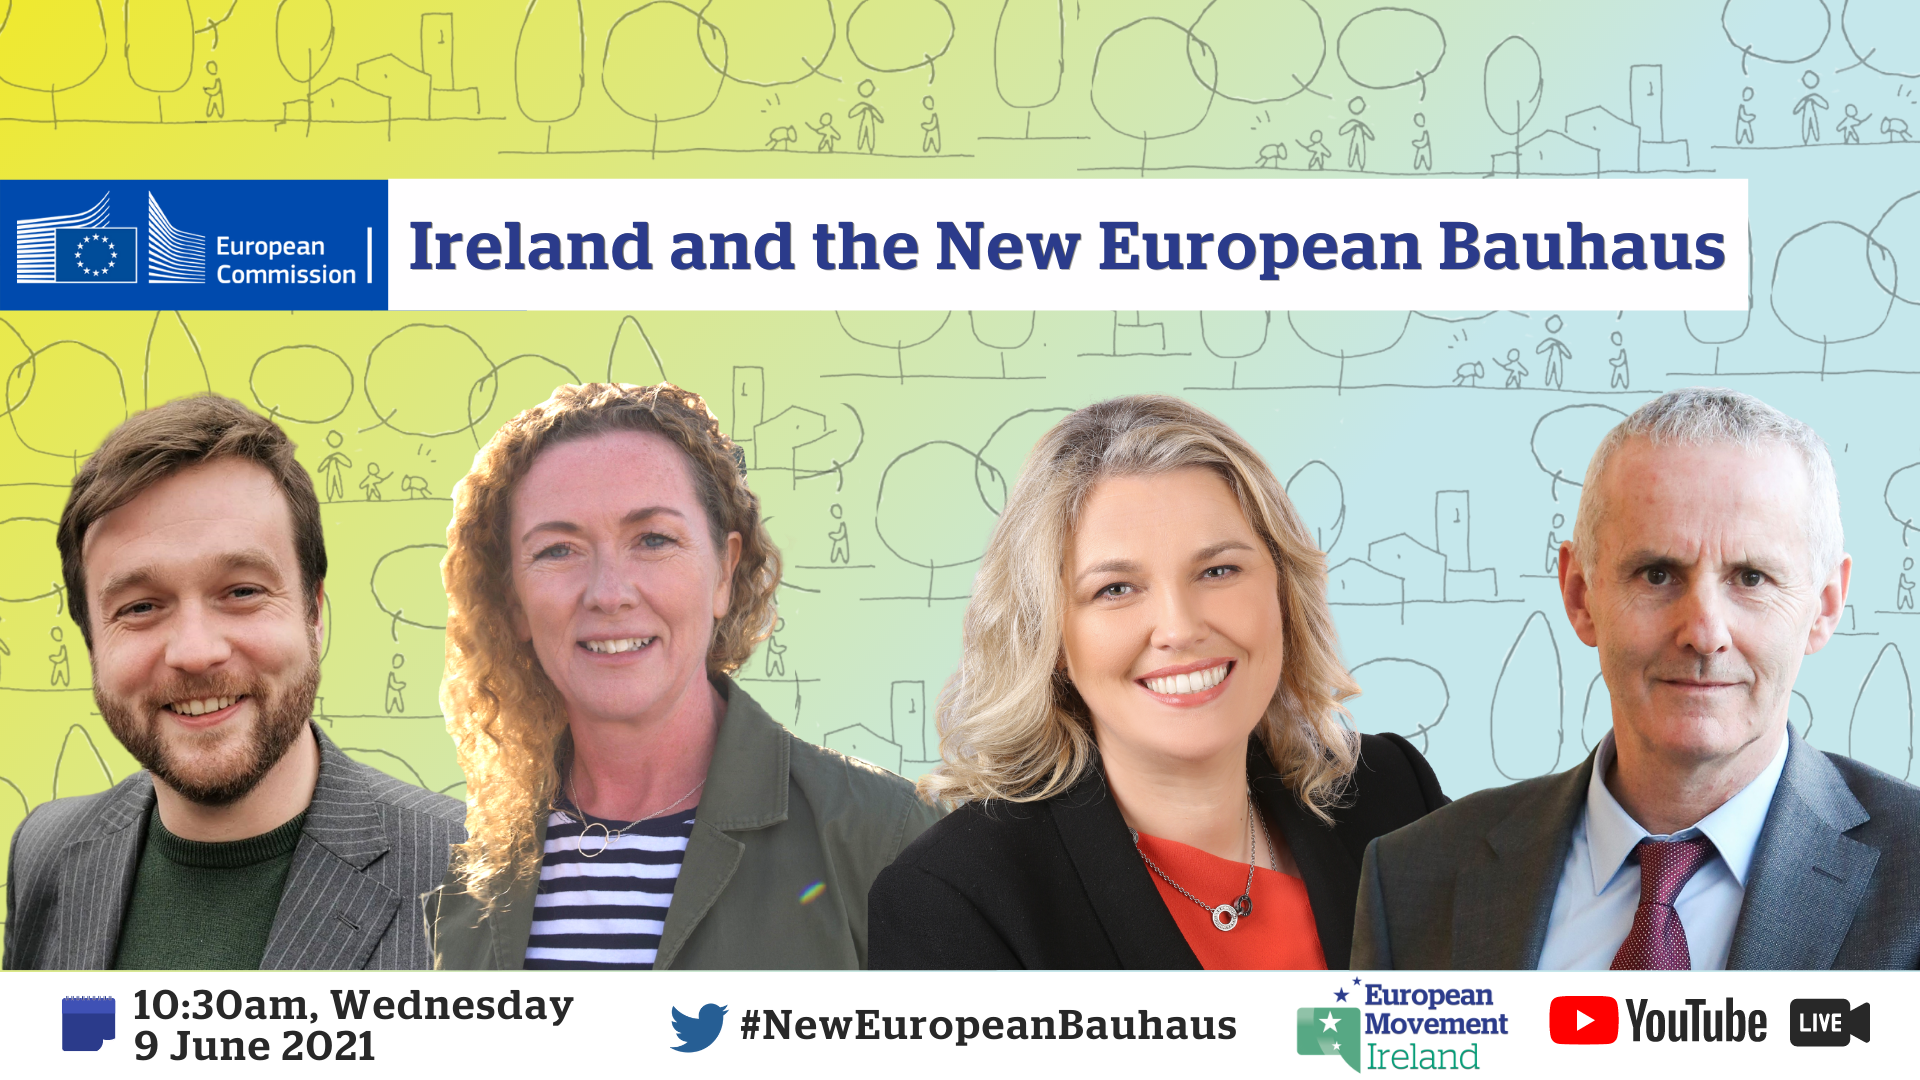 Image about the Ireland and New European Bauhaus event